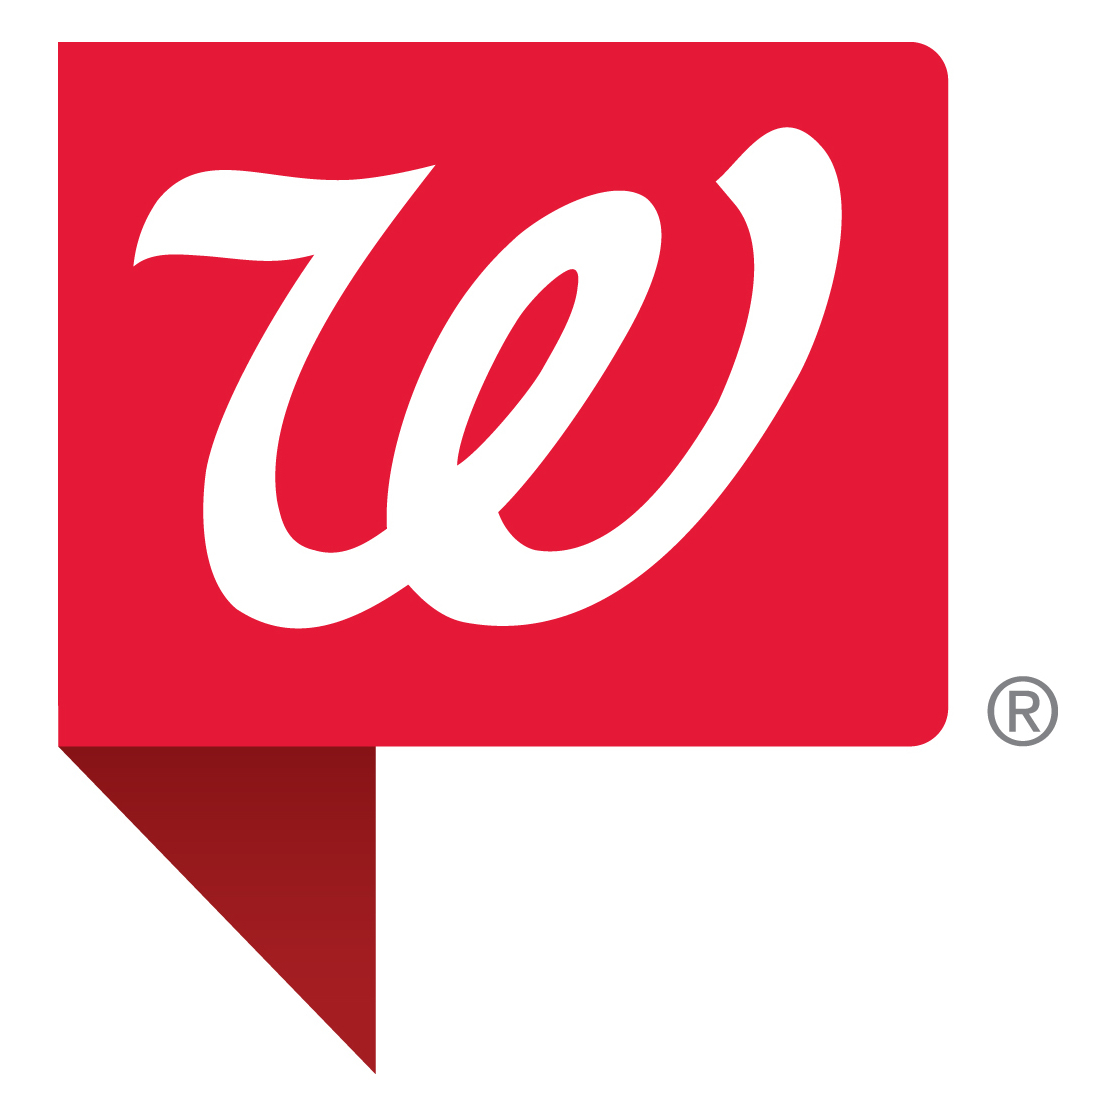 Walgreens Pharmacy at MacNeal Hospital - Berwyn, IL - Pharmacist